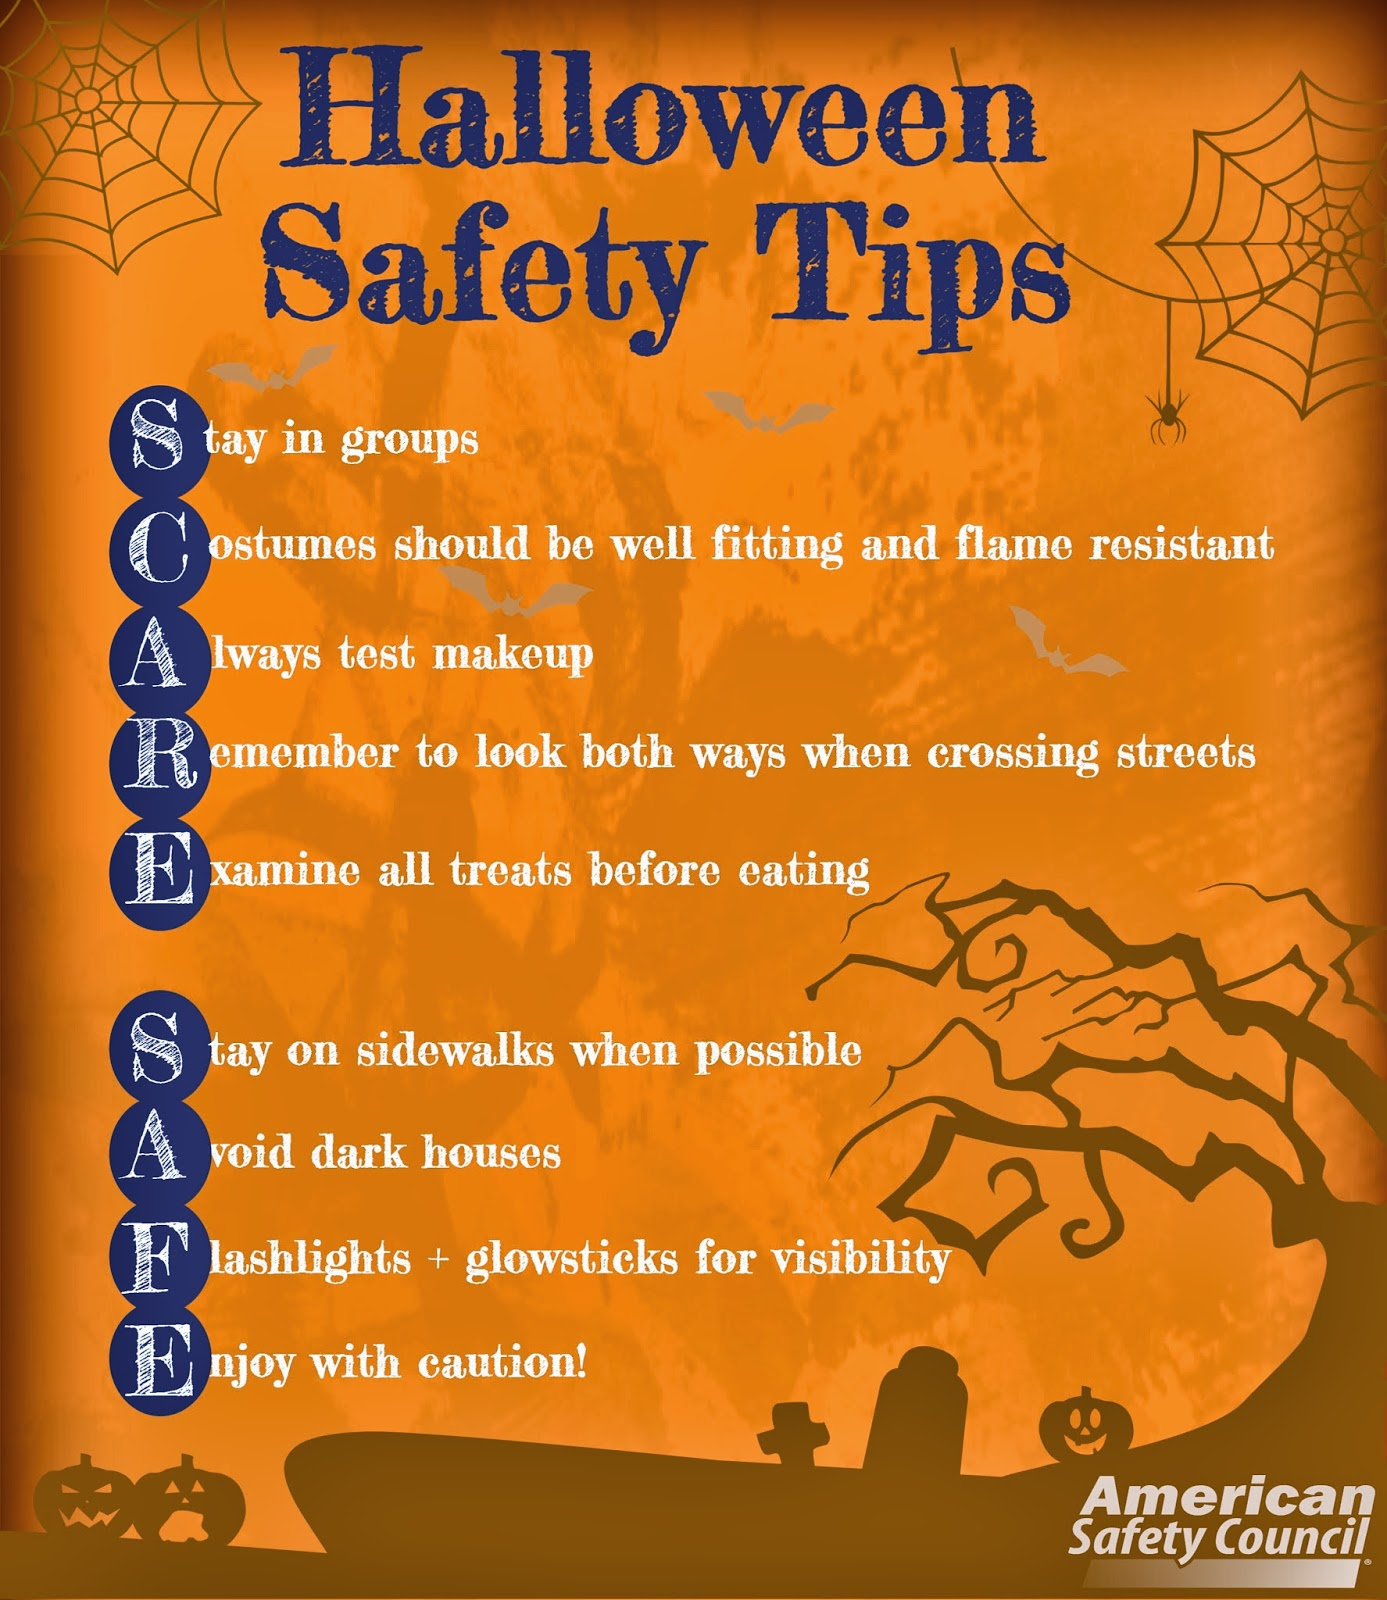 HalloweenSafety Tips